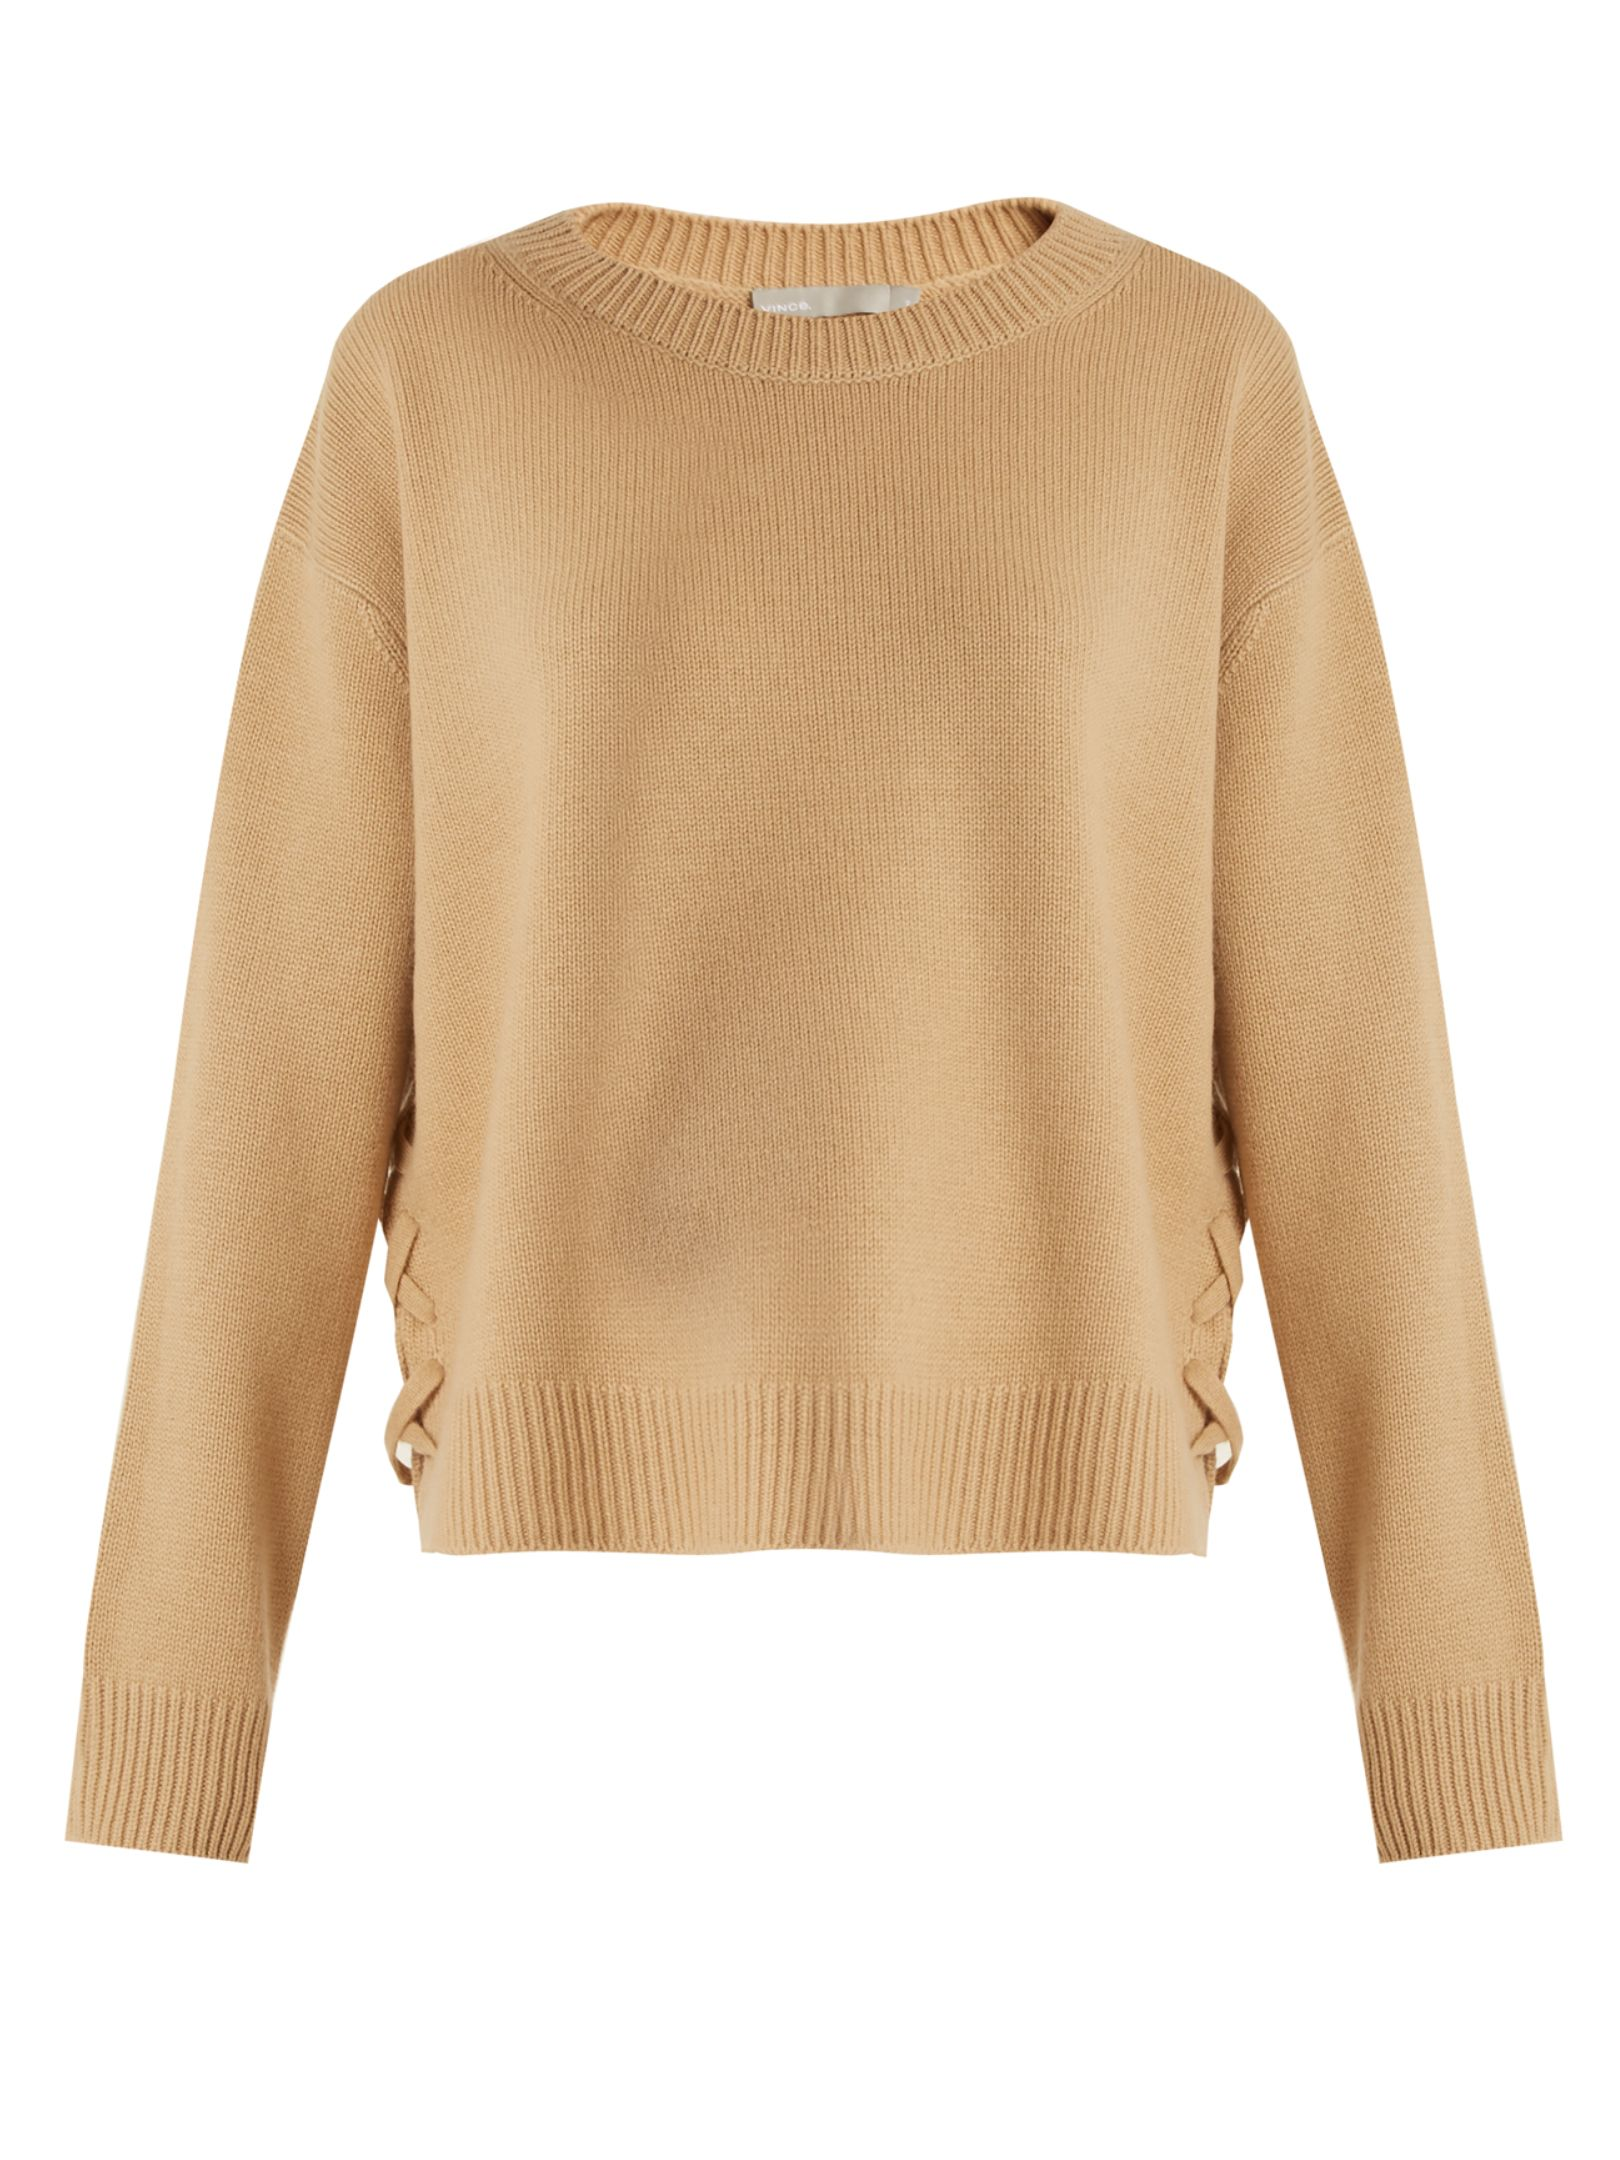 Click here to buy Vince Lace-up side cashmere sweater at ...